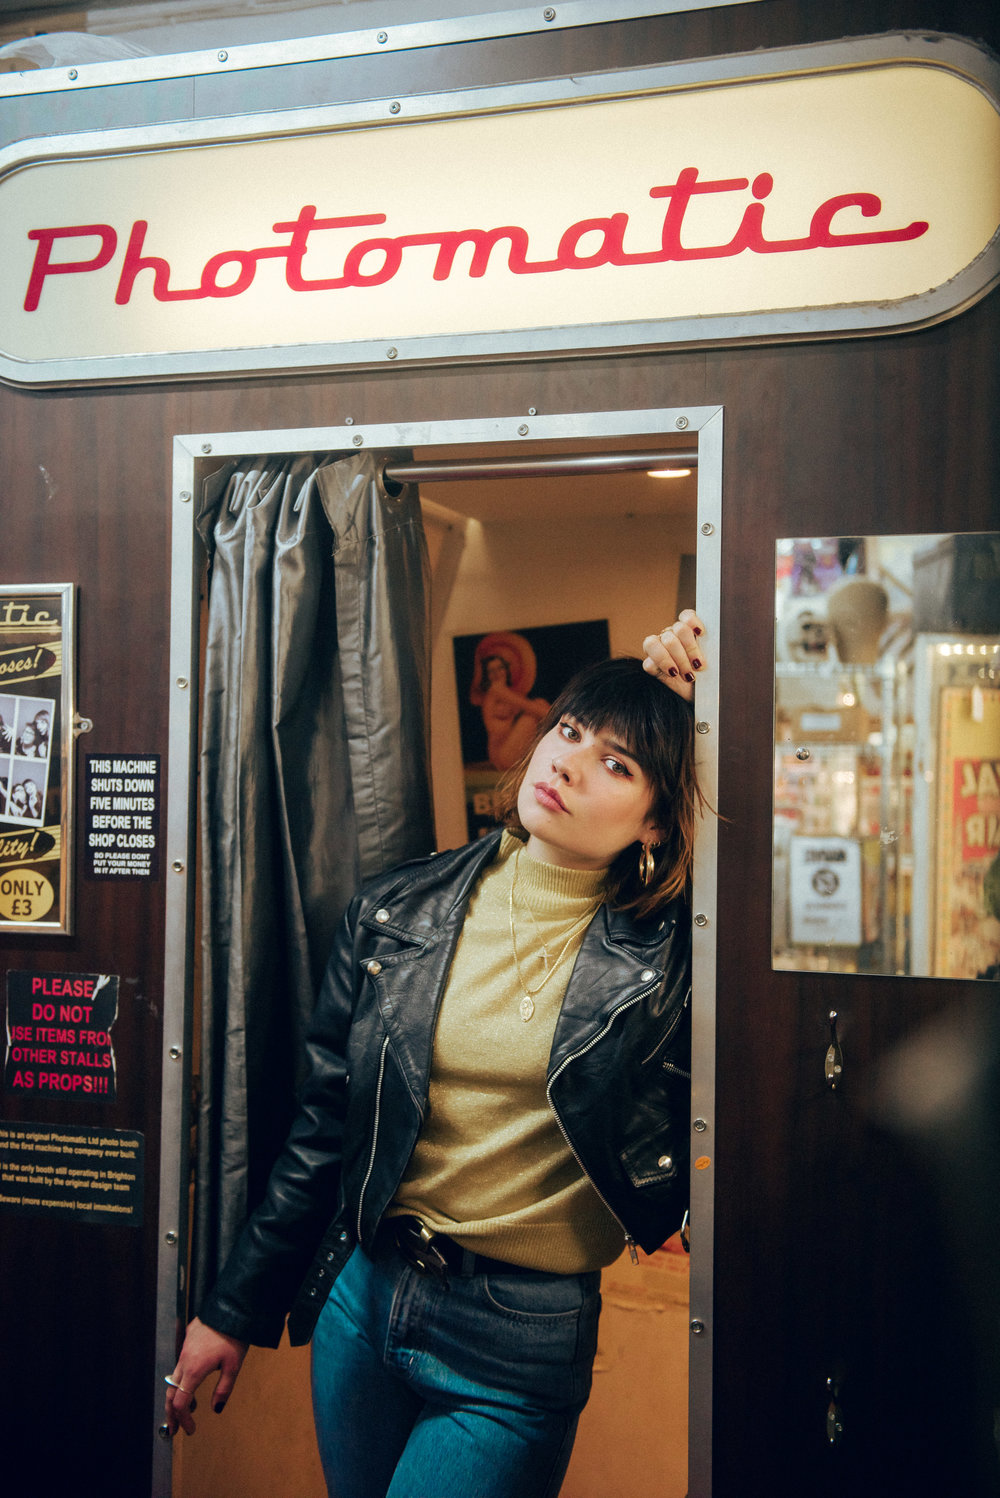 In Conversation With:Lily Moore - Our breakout star of the year has to be Lily Moore. She's headlined Omeara, supported George Ezra at Brixton and released two stunning EPs. Philip Giouras caught up with the soulful singer to talk all things music, eggs and what surprises she has in store for an exciting 2019…